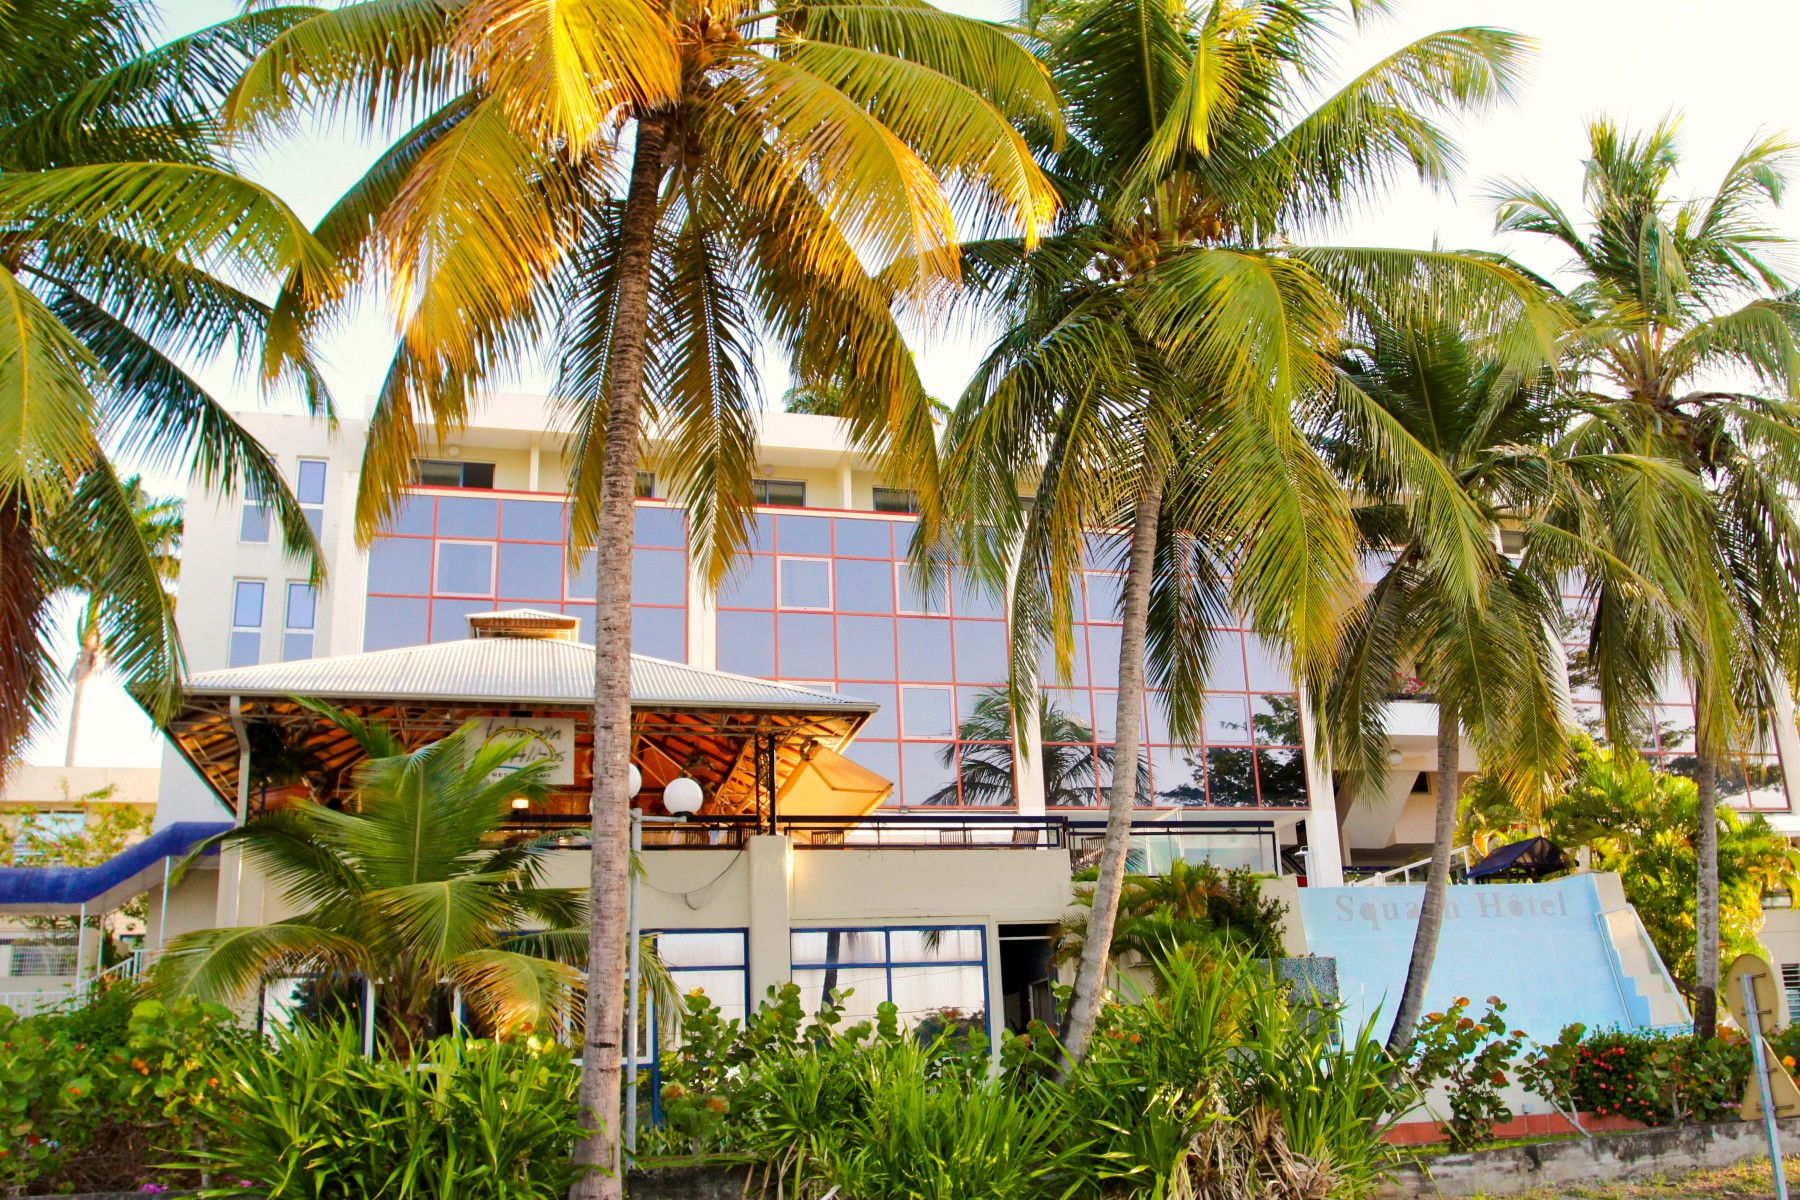 Karibea Squash Hotel 3 * in Fort-de-France - Martinique - Karibea Hotels